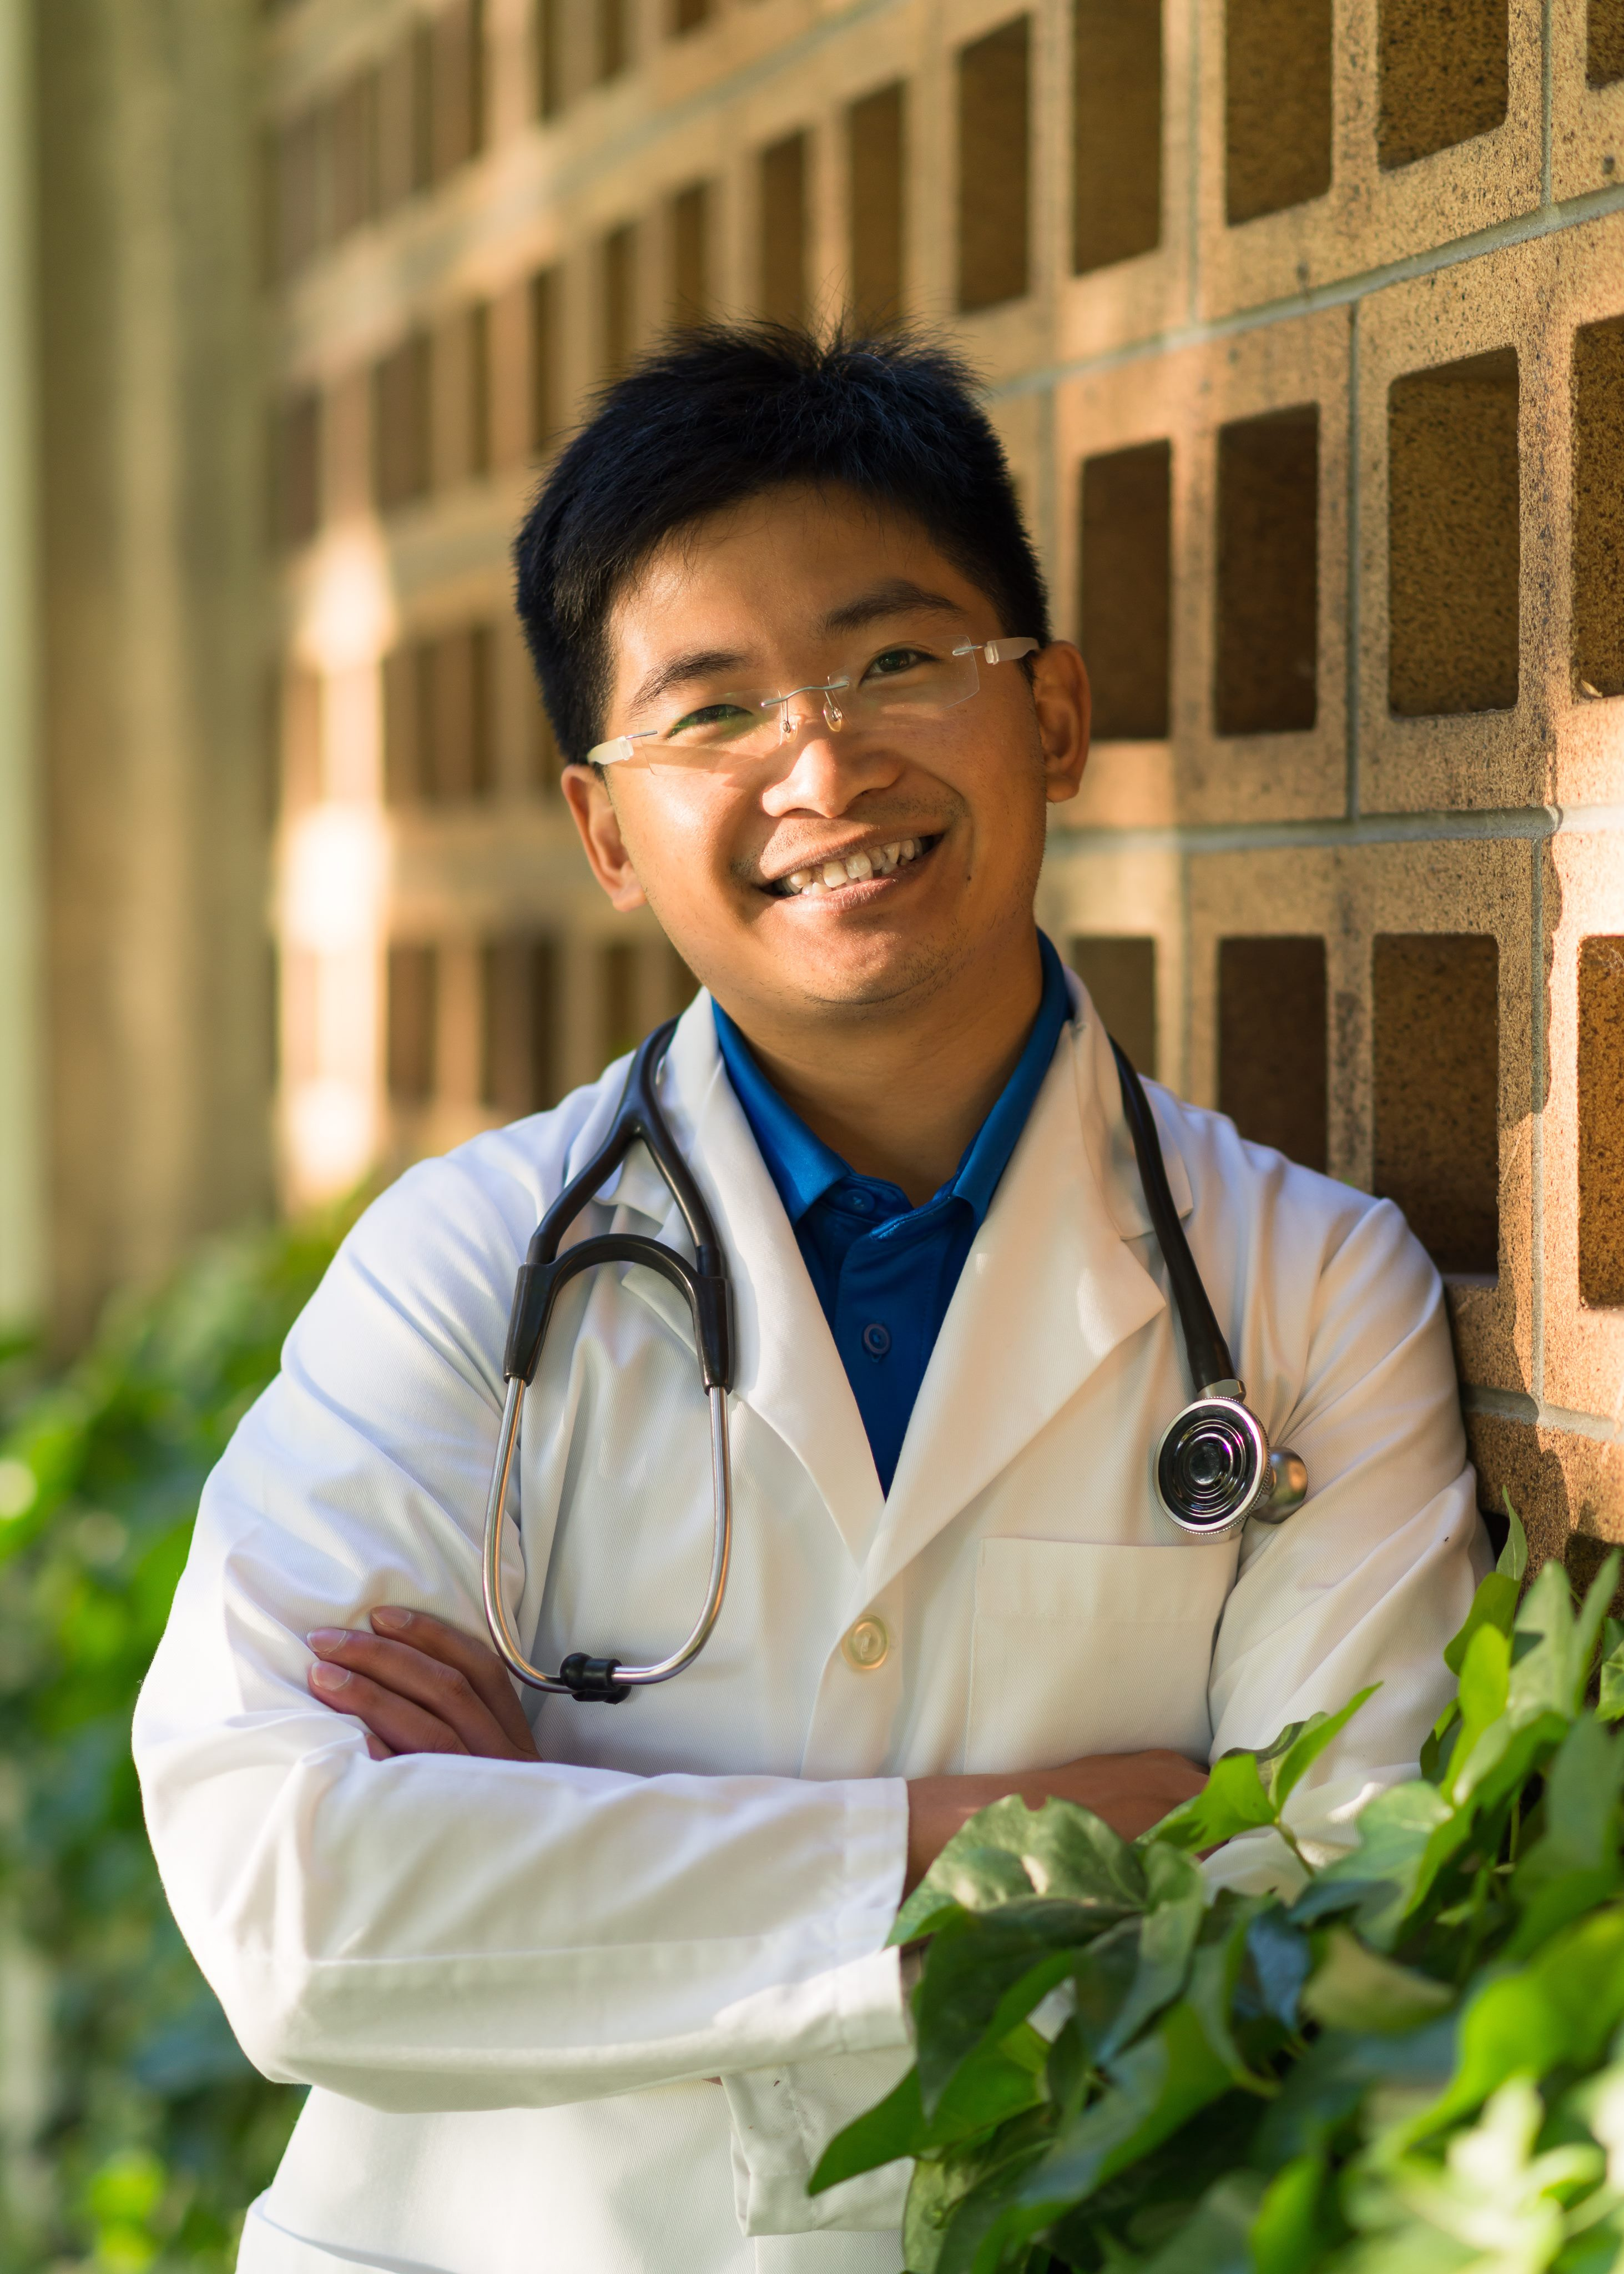 Dr. Romi Fung, ND